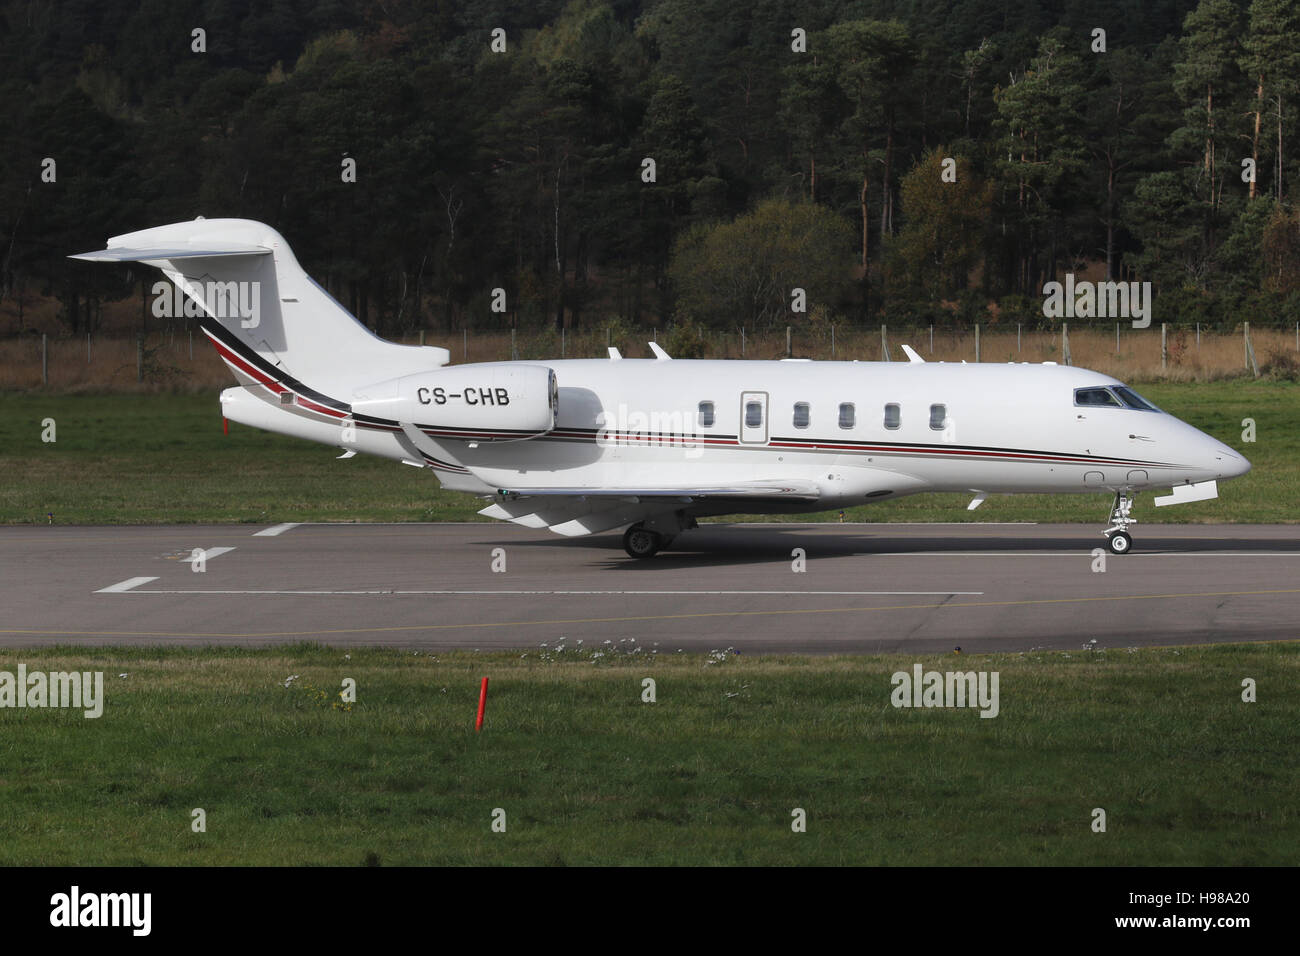 BOMBARDIER CHALLENGER 350 PRIVATE JET. NET JETS - Stock Image